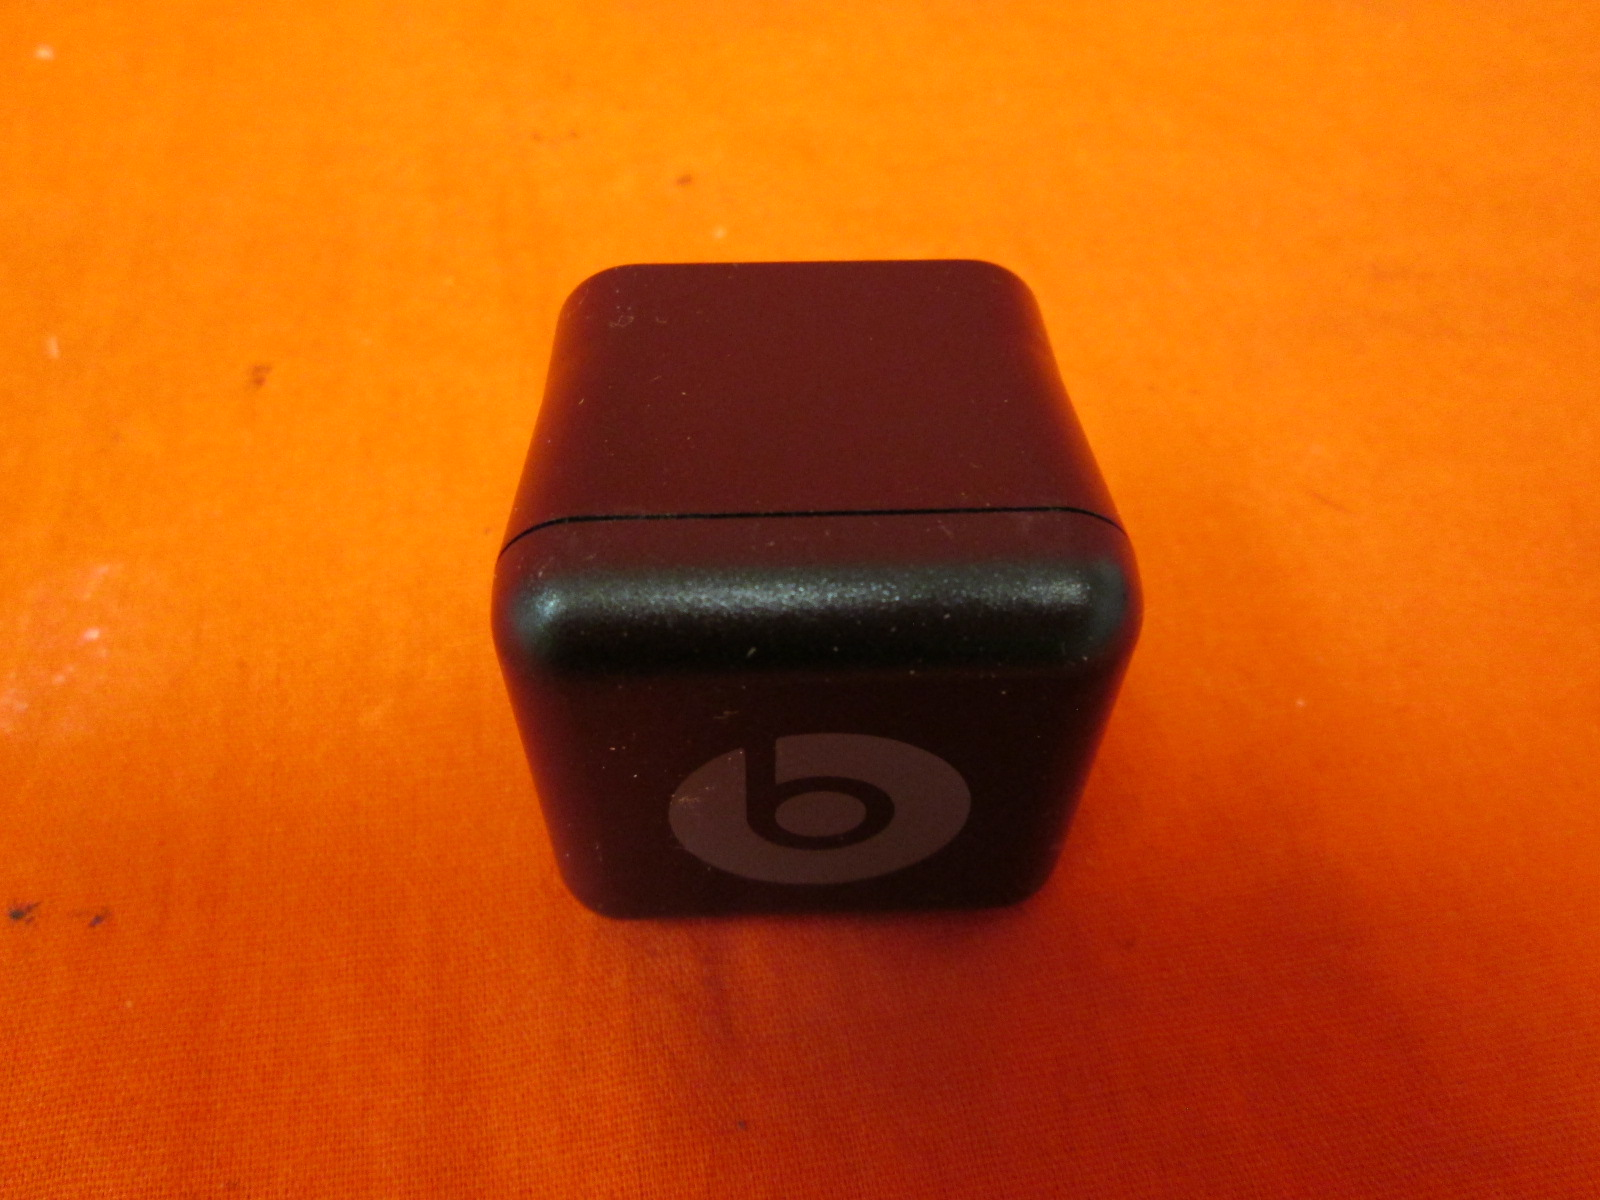 Beats Power USB Power Brick